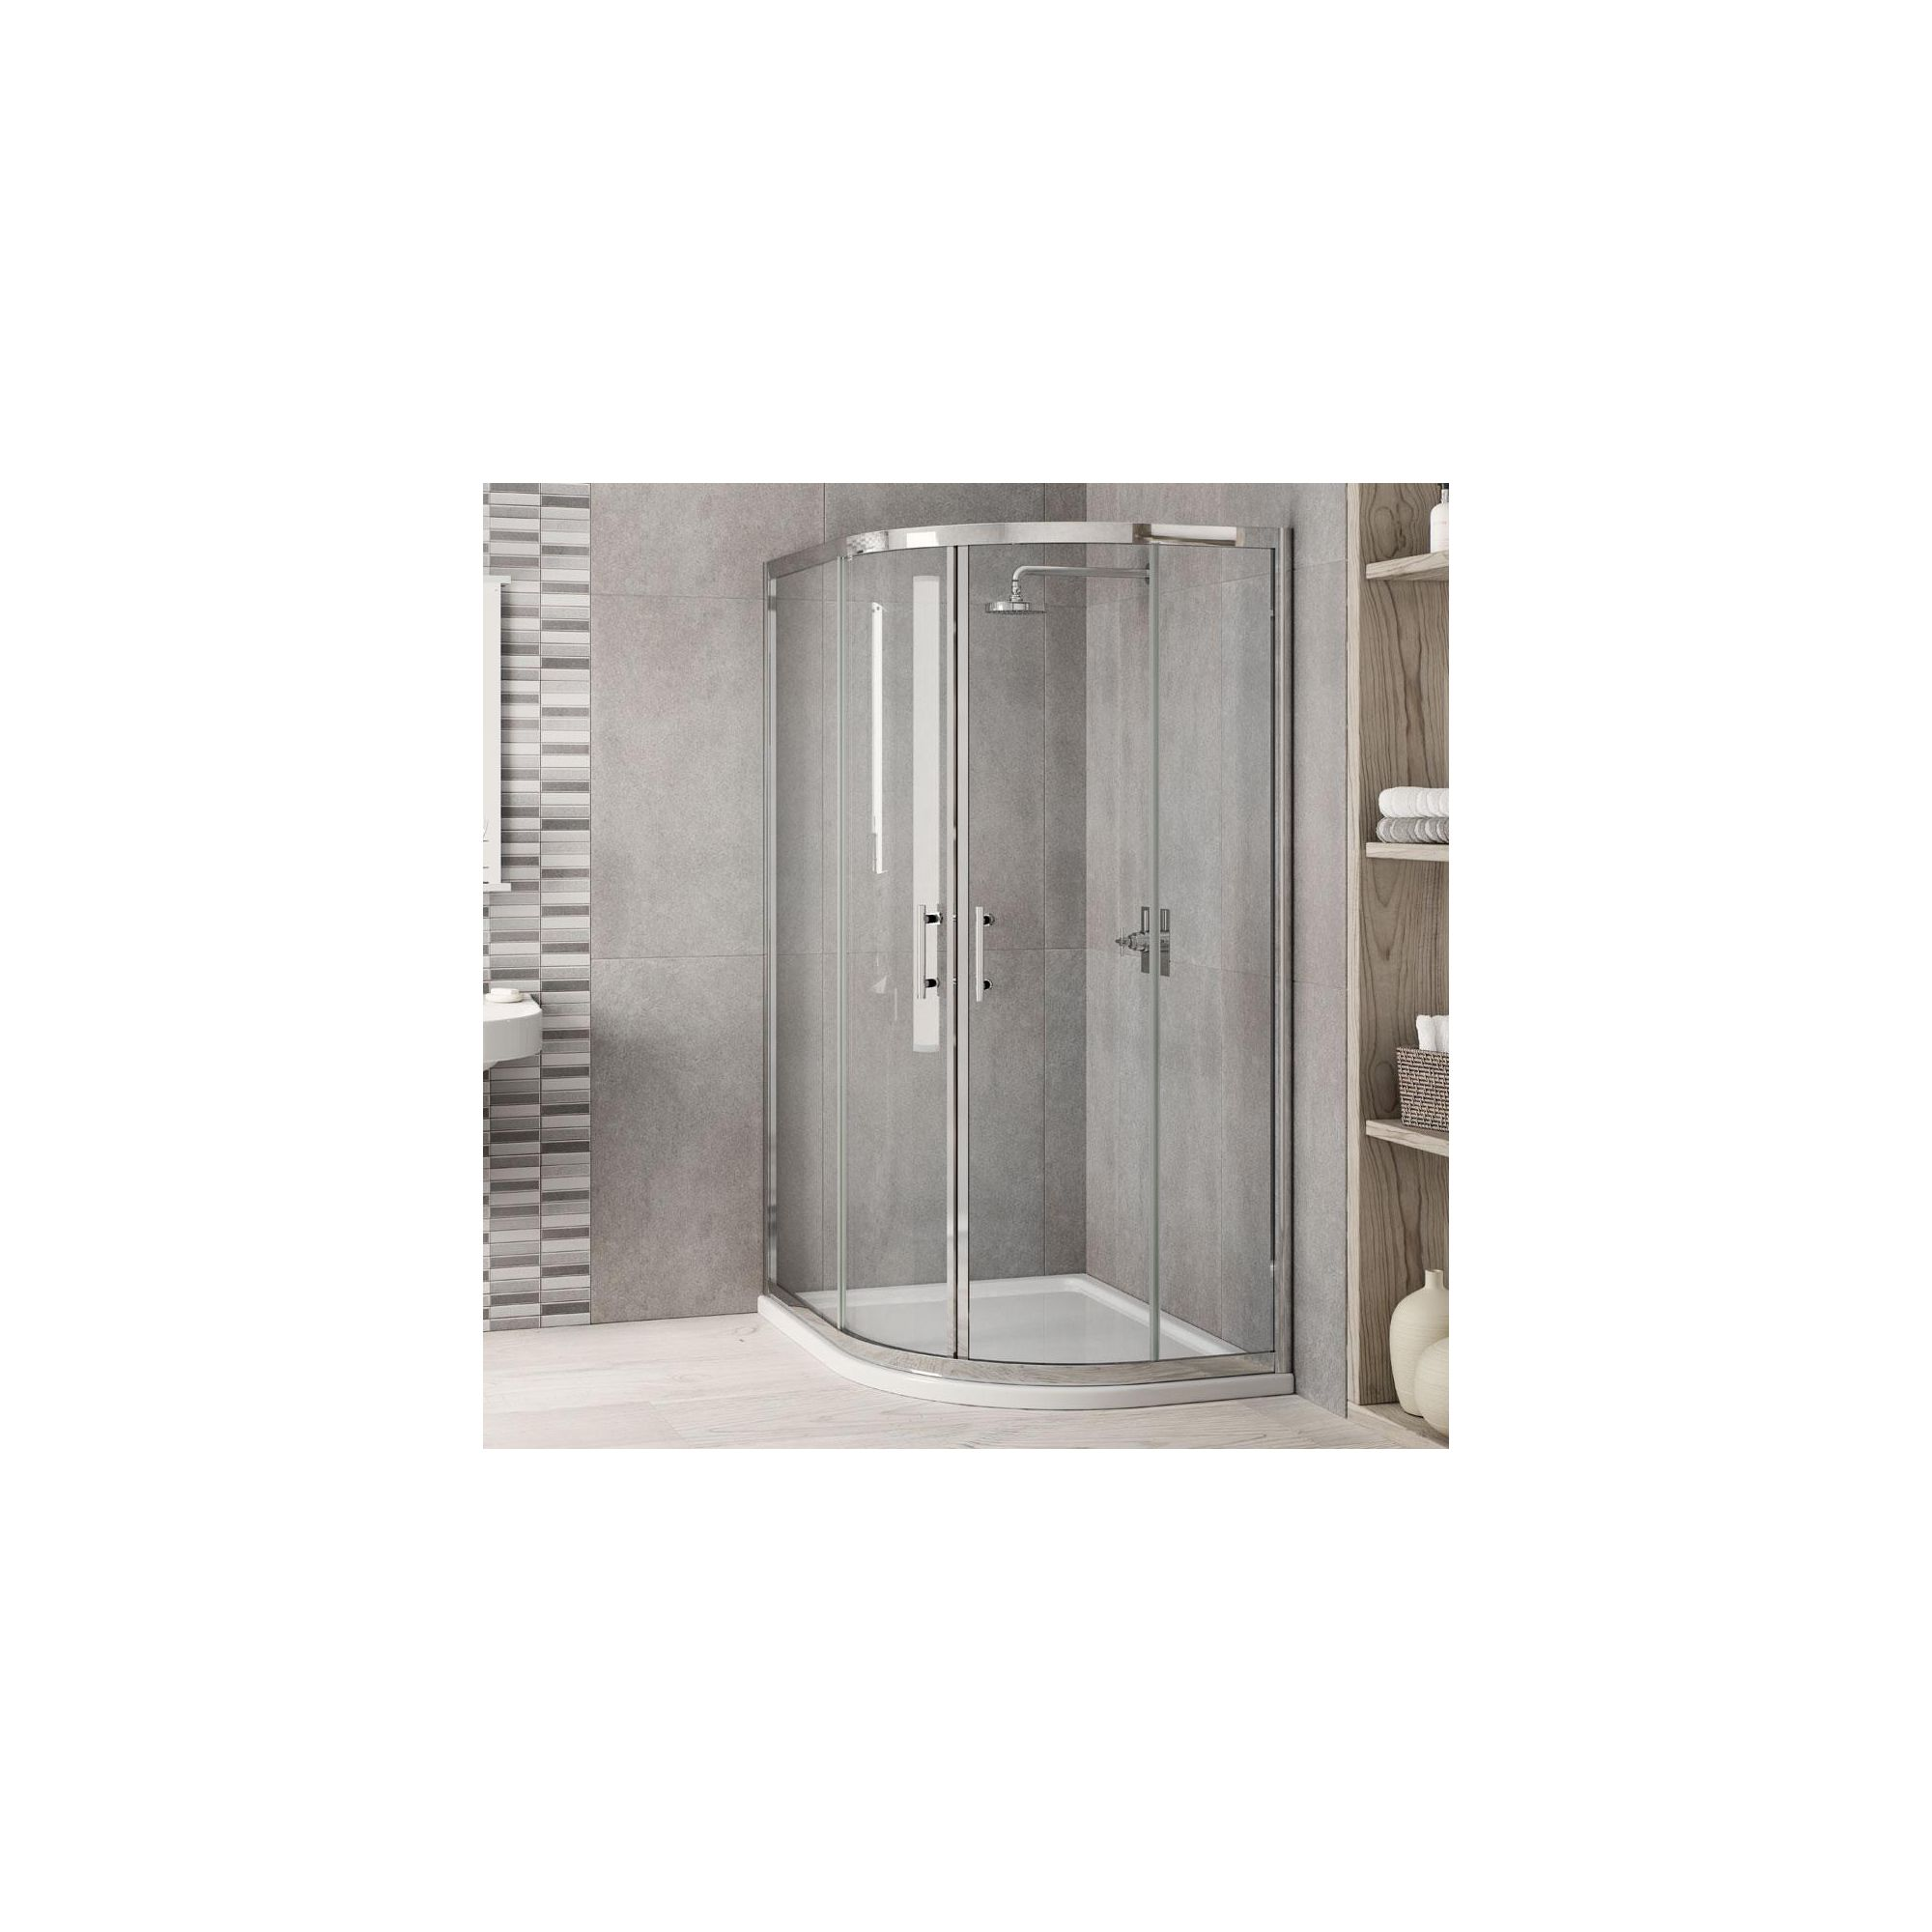 Elemis Inspire Two-Door Offset Quadrant Shower Door, 1000mm x 800mm, 6mm Glass at Tesco Direct